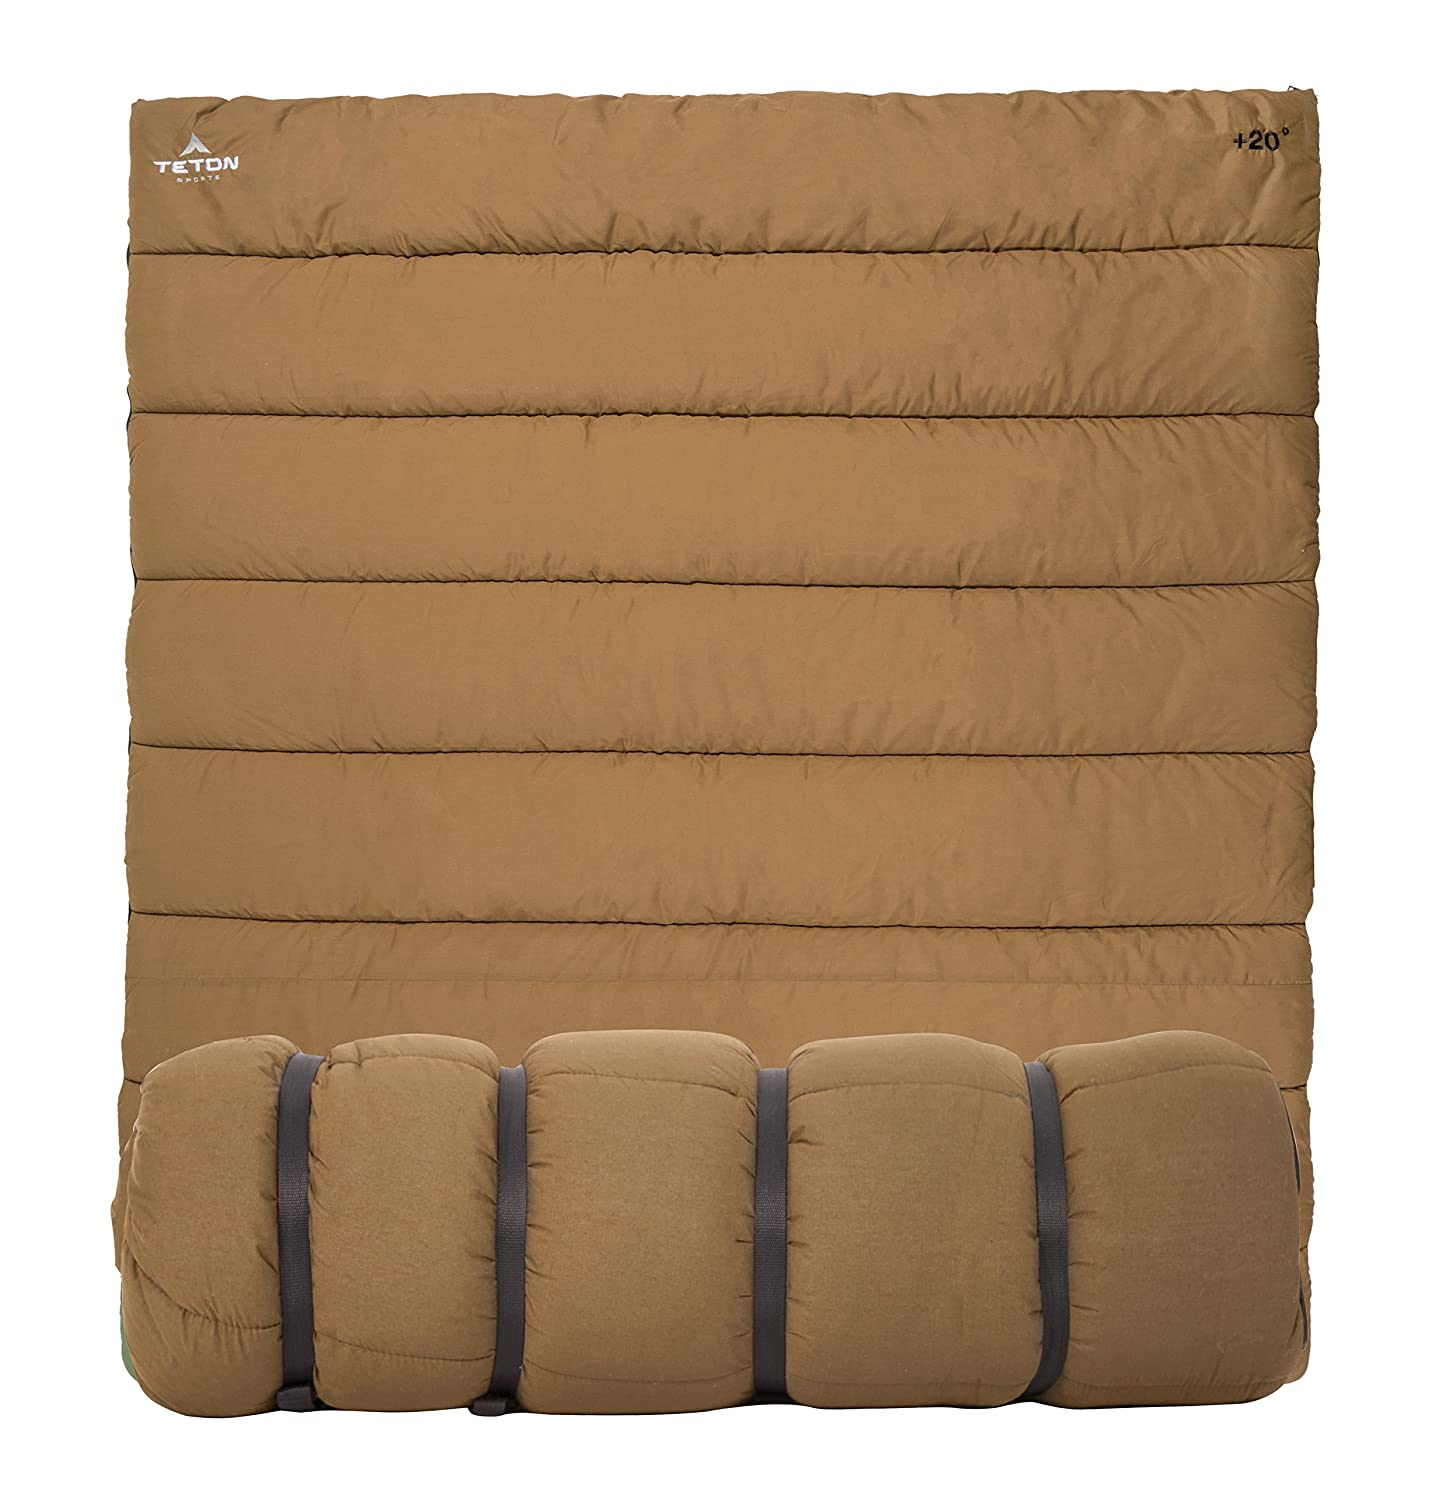 TETON Sports Evergreen Canvas Sleeping Bag; Warm and Comfortable Sleeping Bag for Camping or Hunting; Mild Weather Sleeping Bag Perfect for a Family Campout in the Backyard or the Great Outdoors